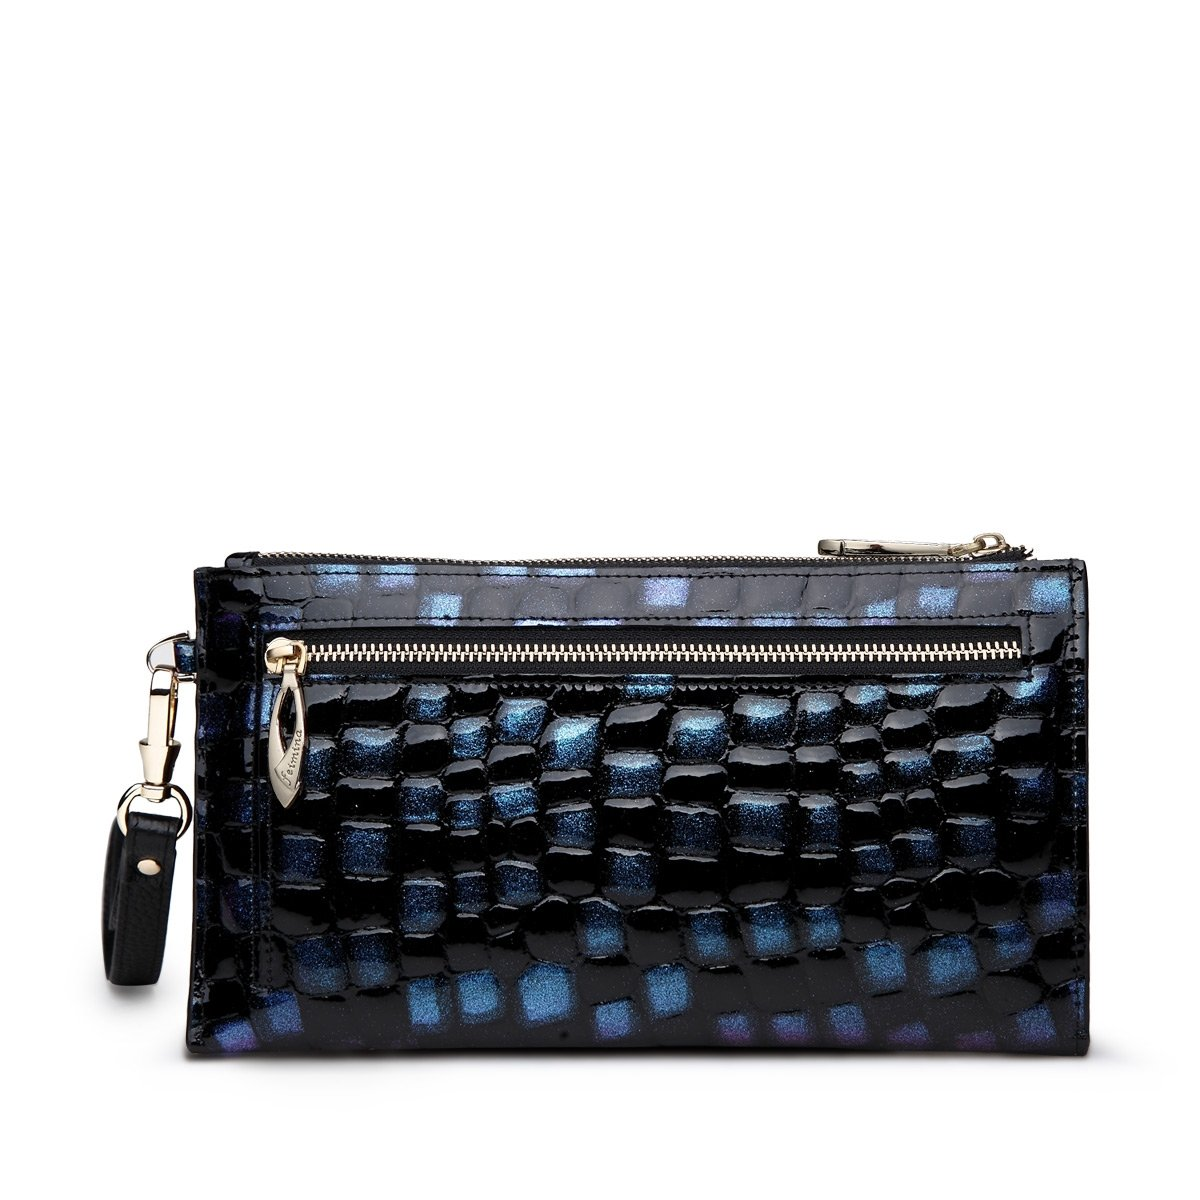 Black Blue Cowhide Genuine Leather Embossed Alligator Long Wallet Vogue Casual Party Evening Clutch Purse Socialite Women Handle Bag